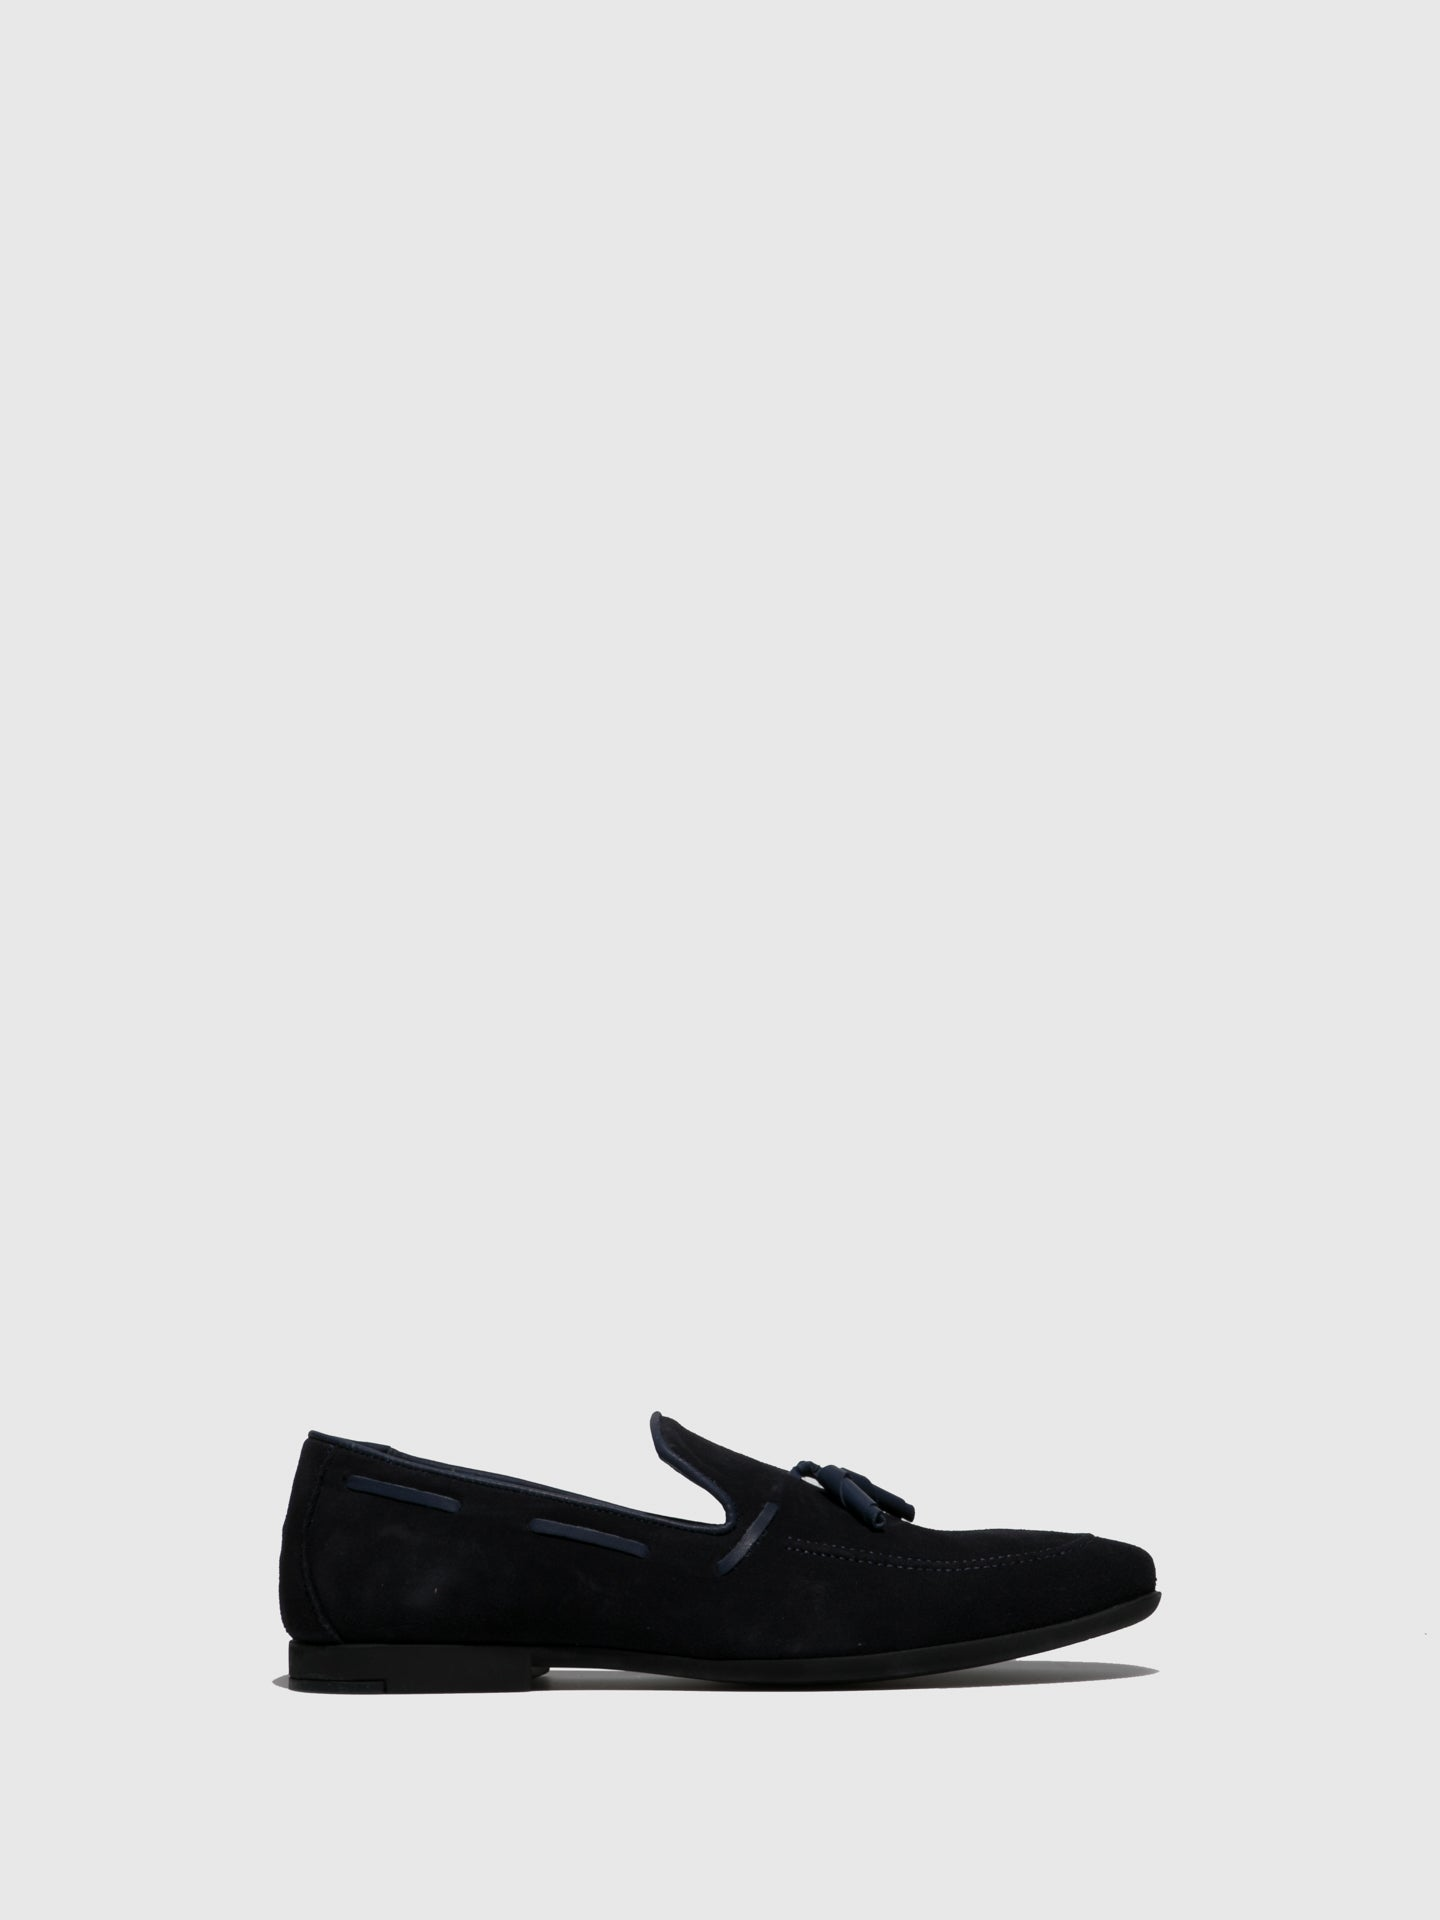 Foreva Navy Loafers Shoes